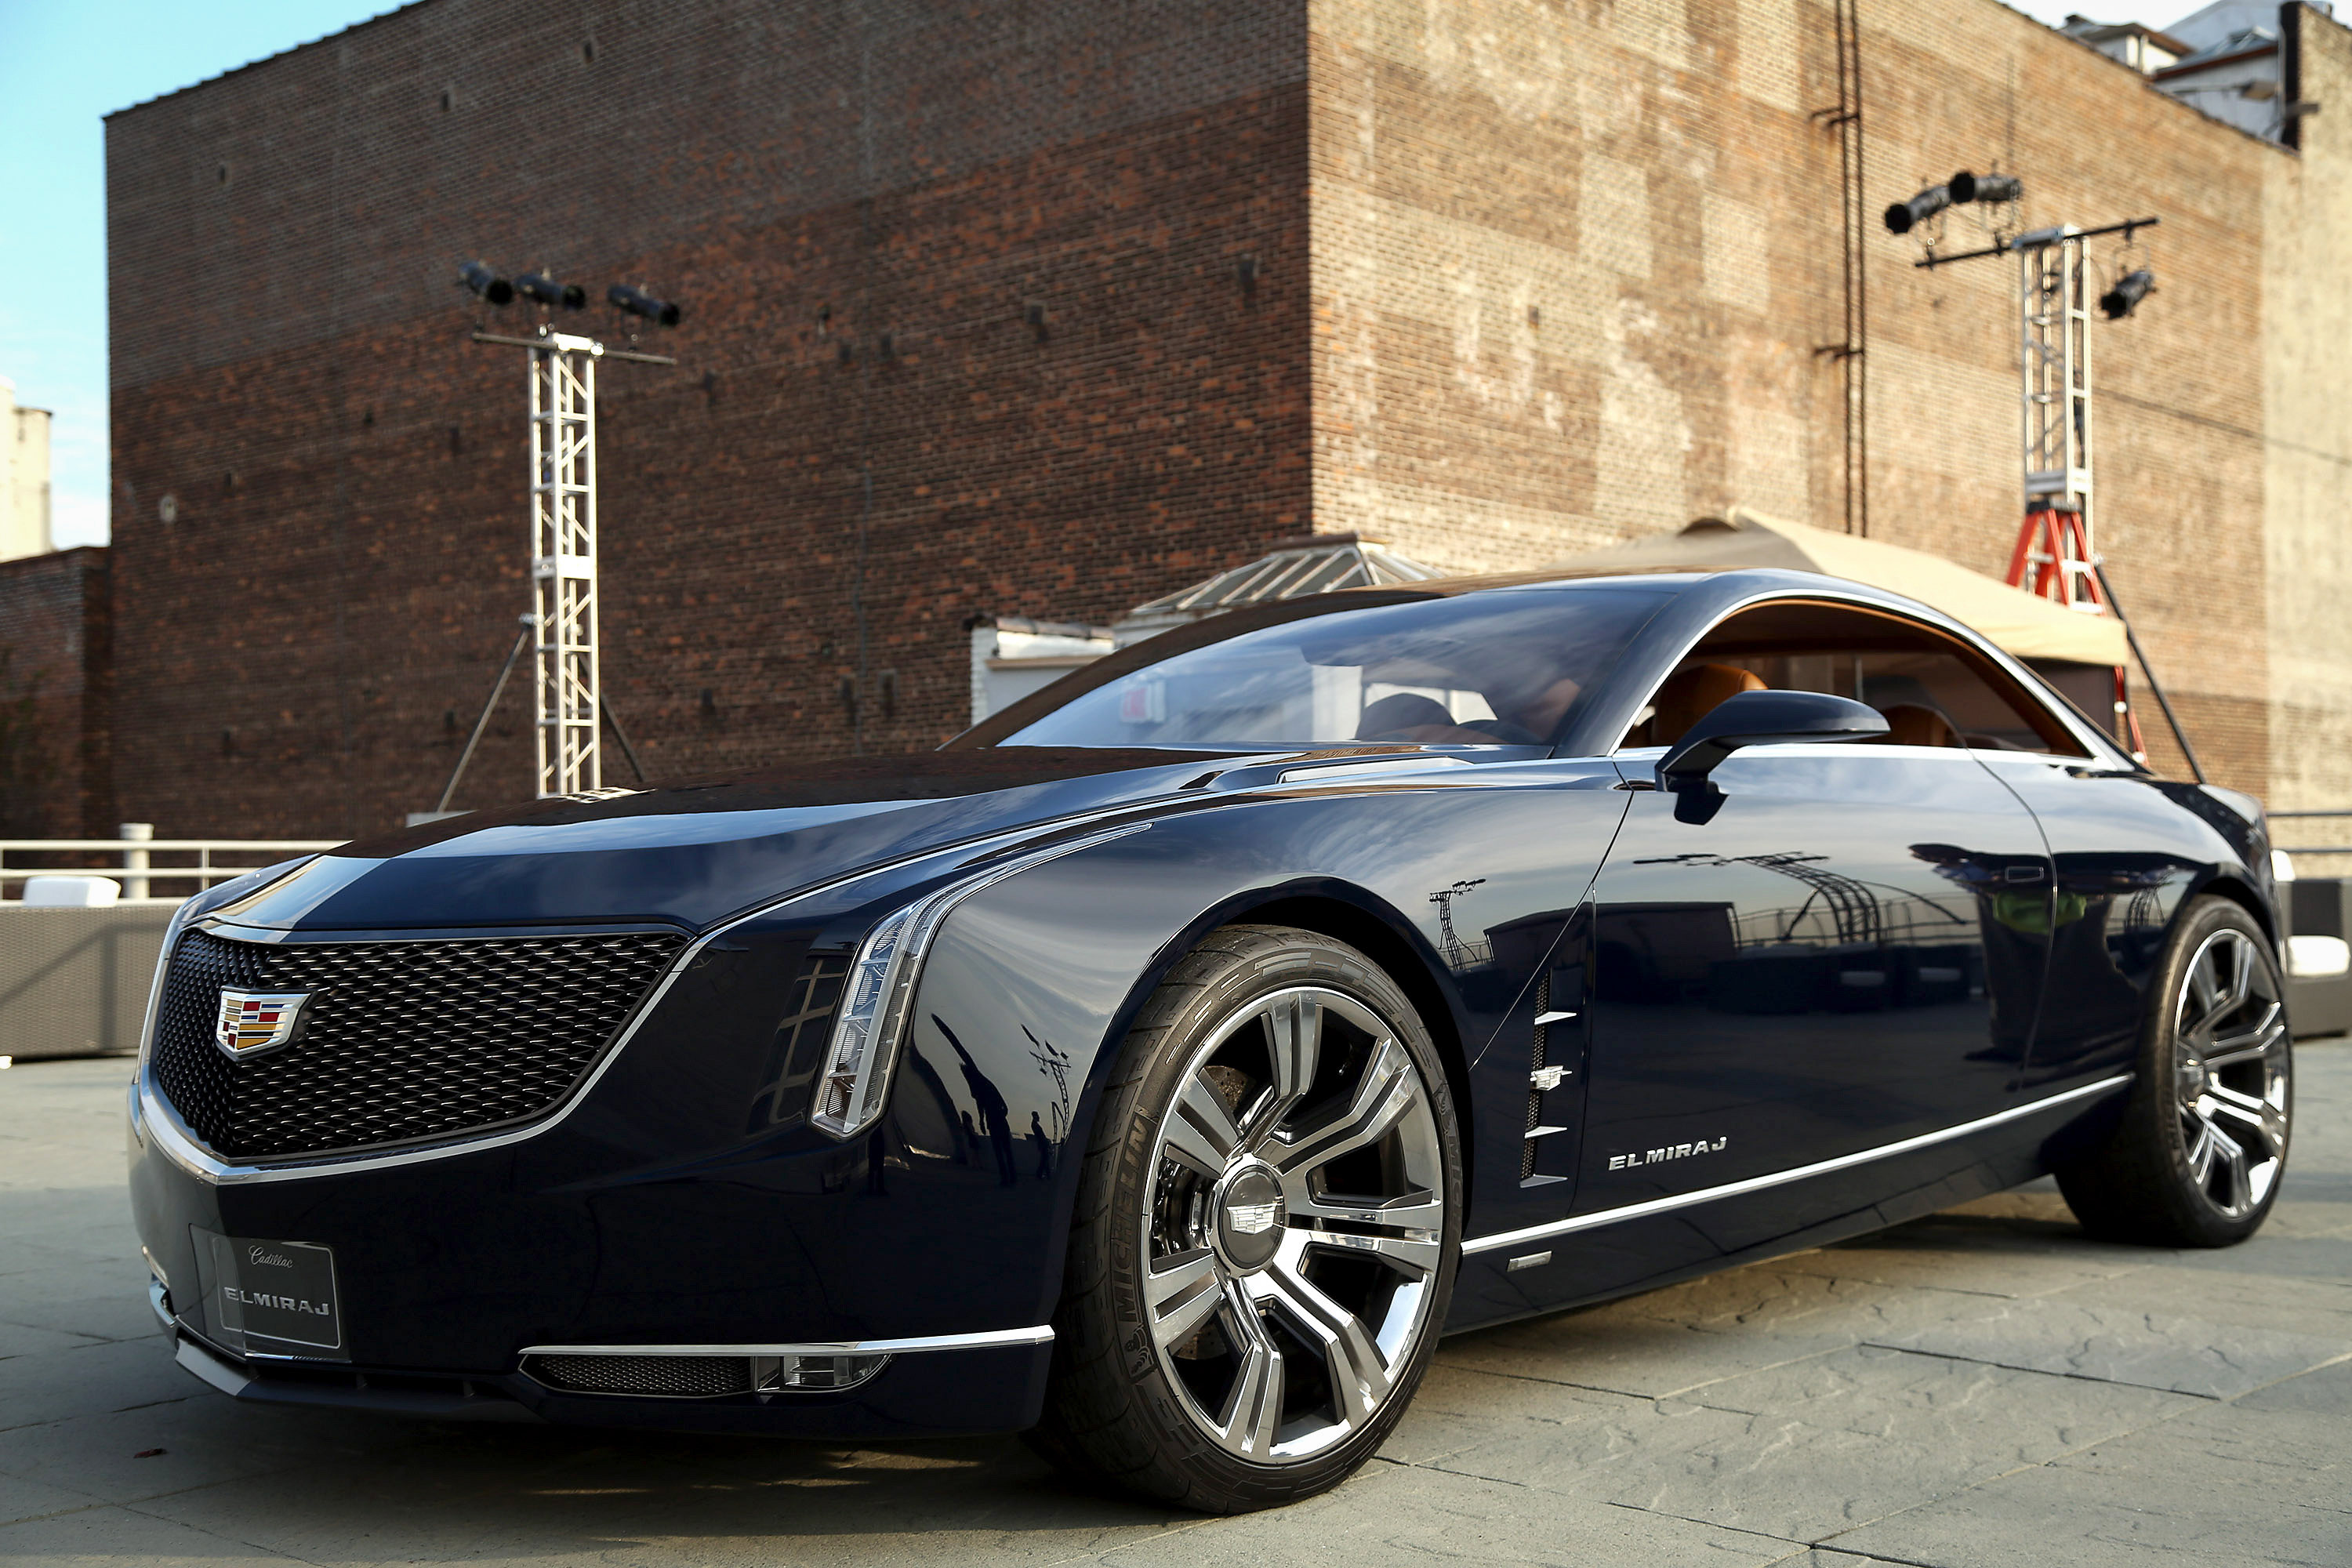 cadillacs news industry best pages vehicles media detail feb livery us brings cadillac en to its content xts